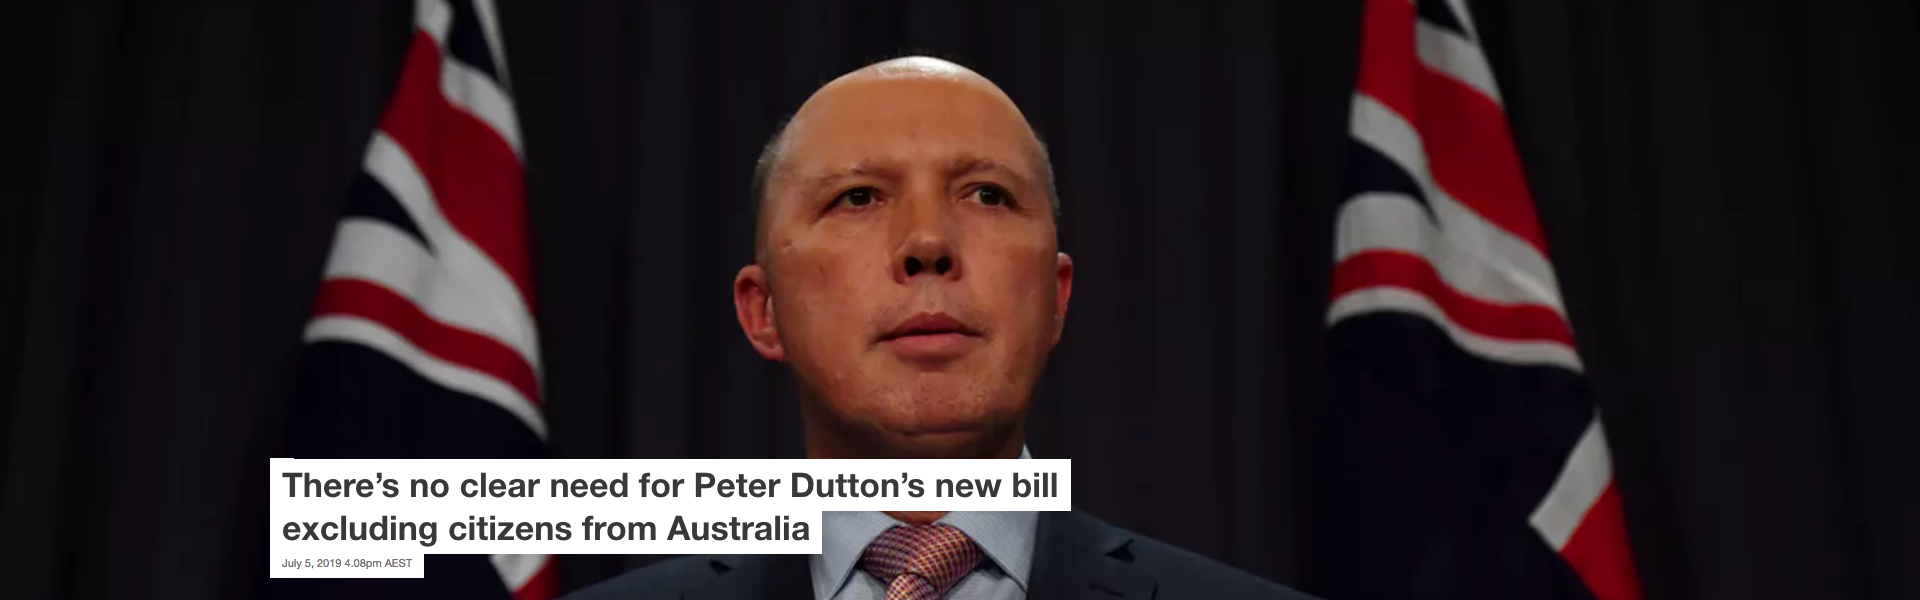 Screenshot_2019-07-06 There's no clear need for Peter Dutton's new bill excluding citizens from Australia.png